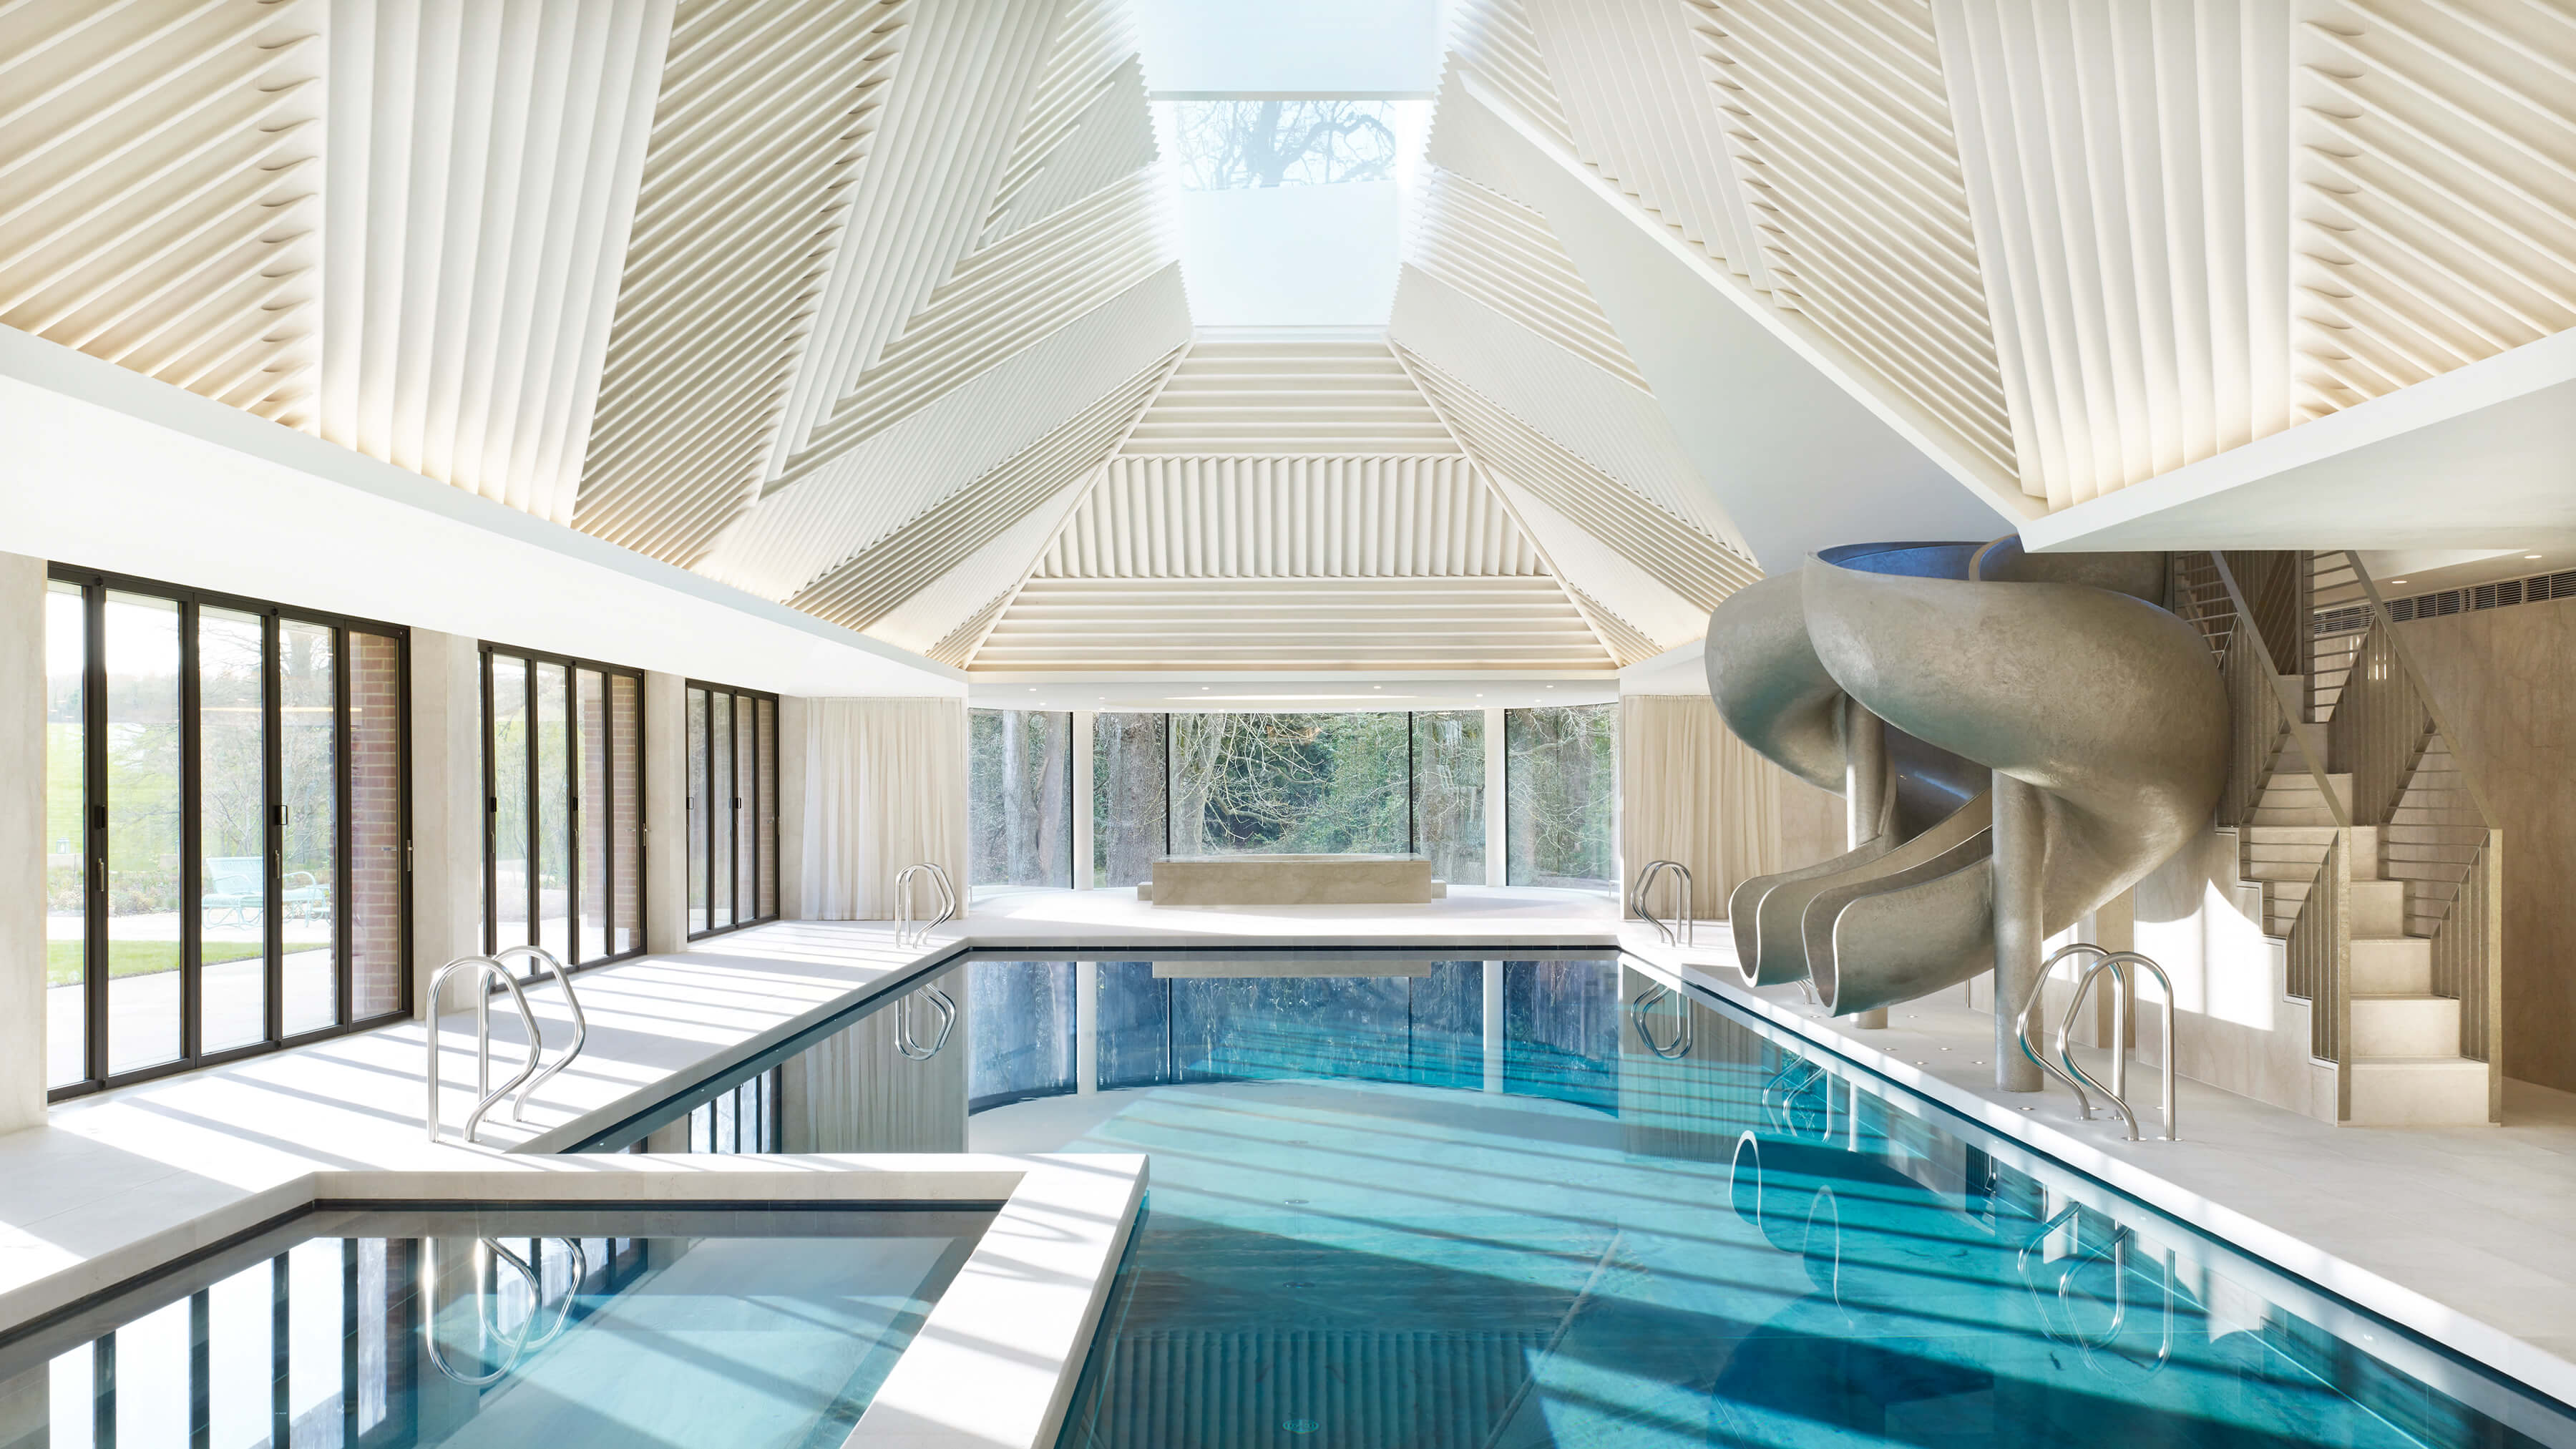 Metallic gold resin pool slide by Splinterworks in spectacular pool pavilion with sky light.